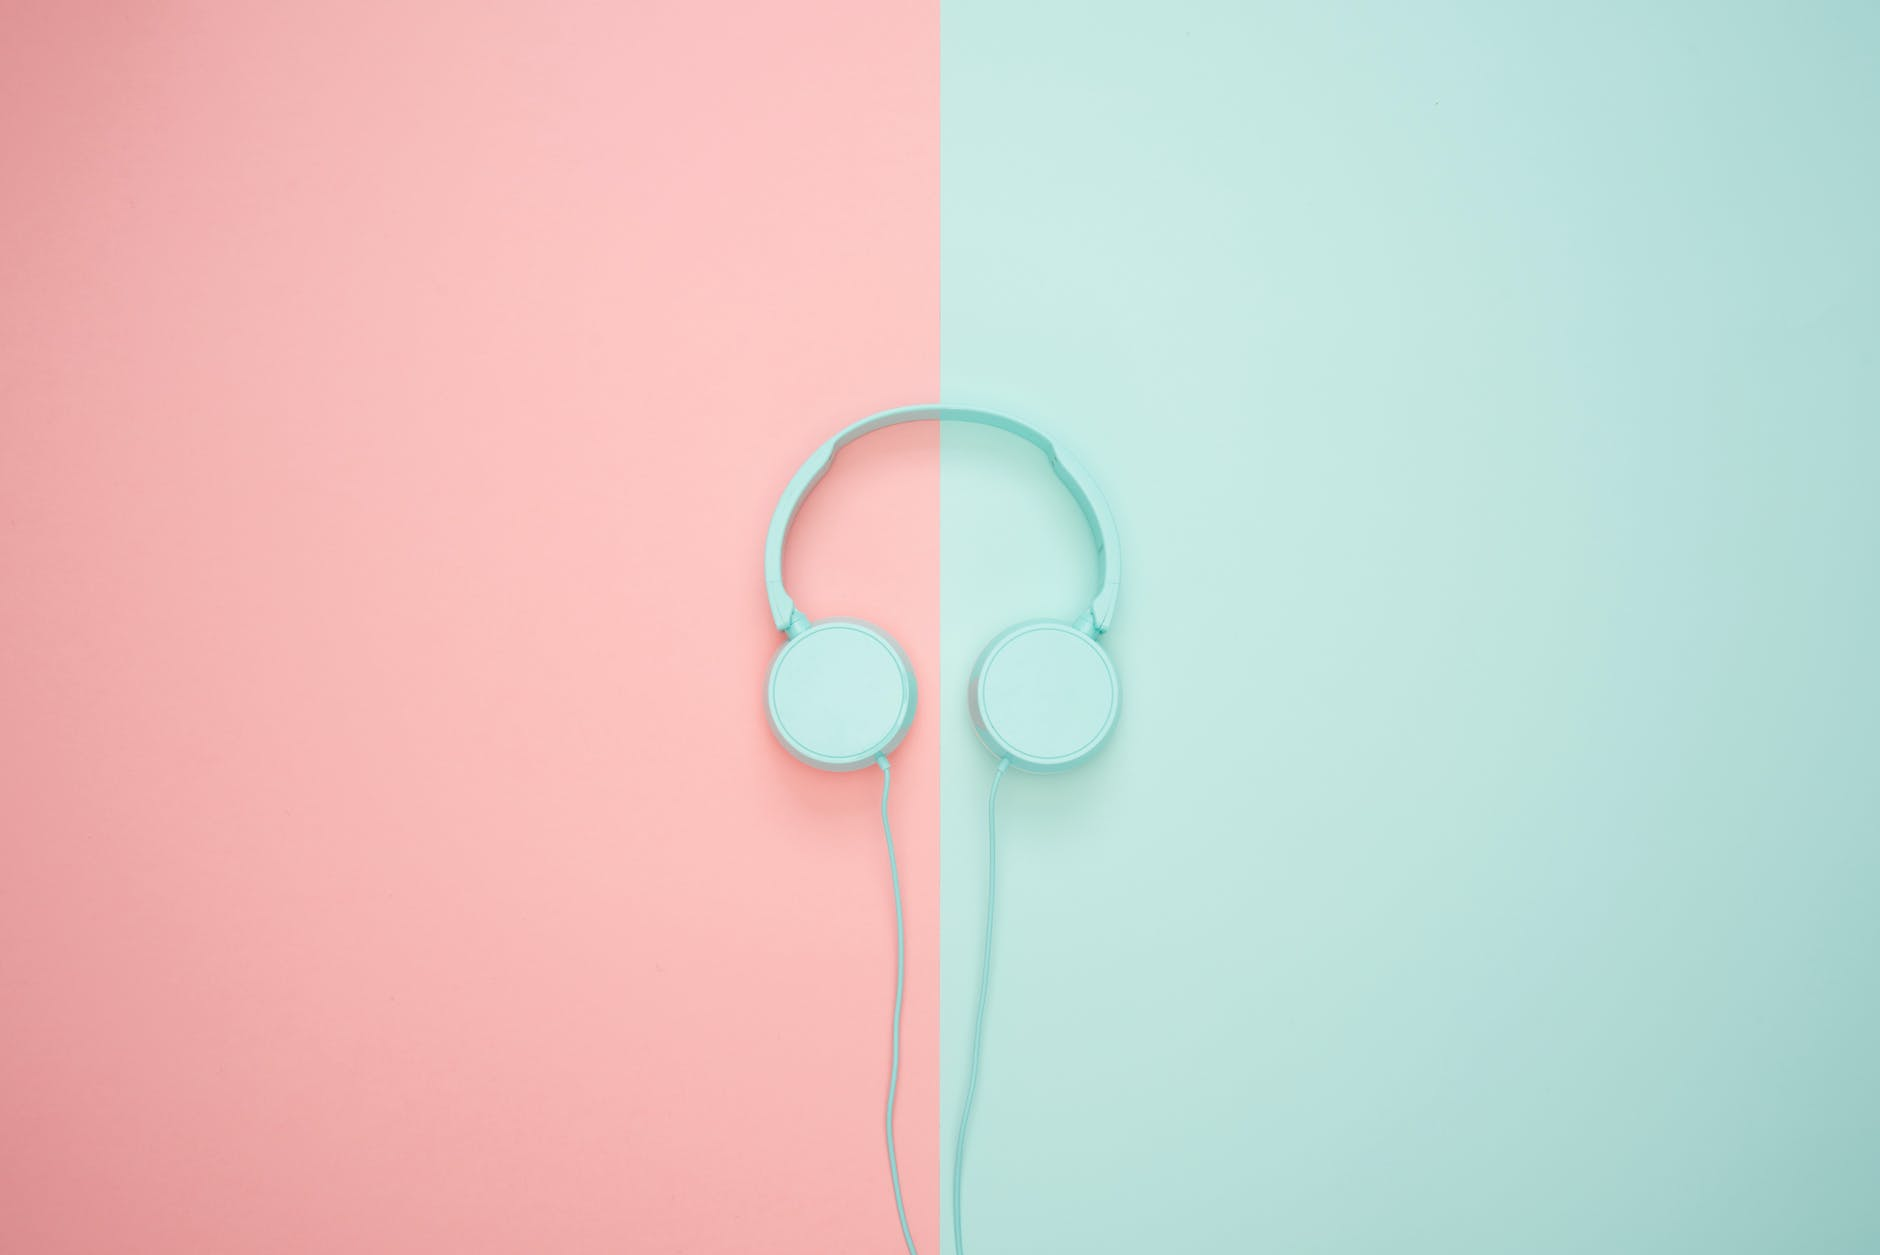 pastel colour earphones on pastel background